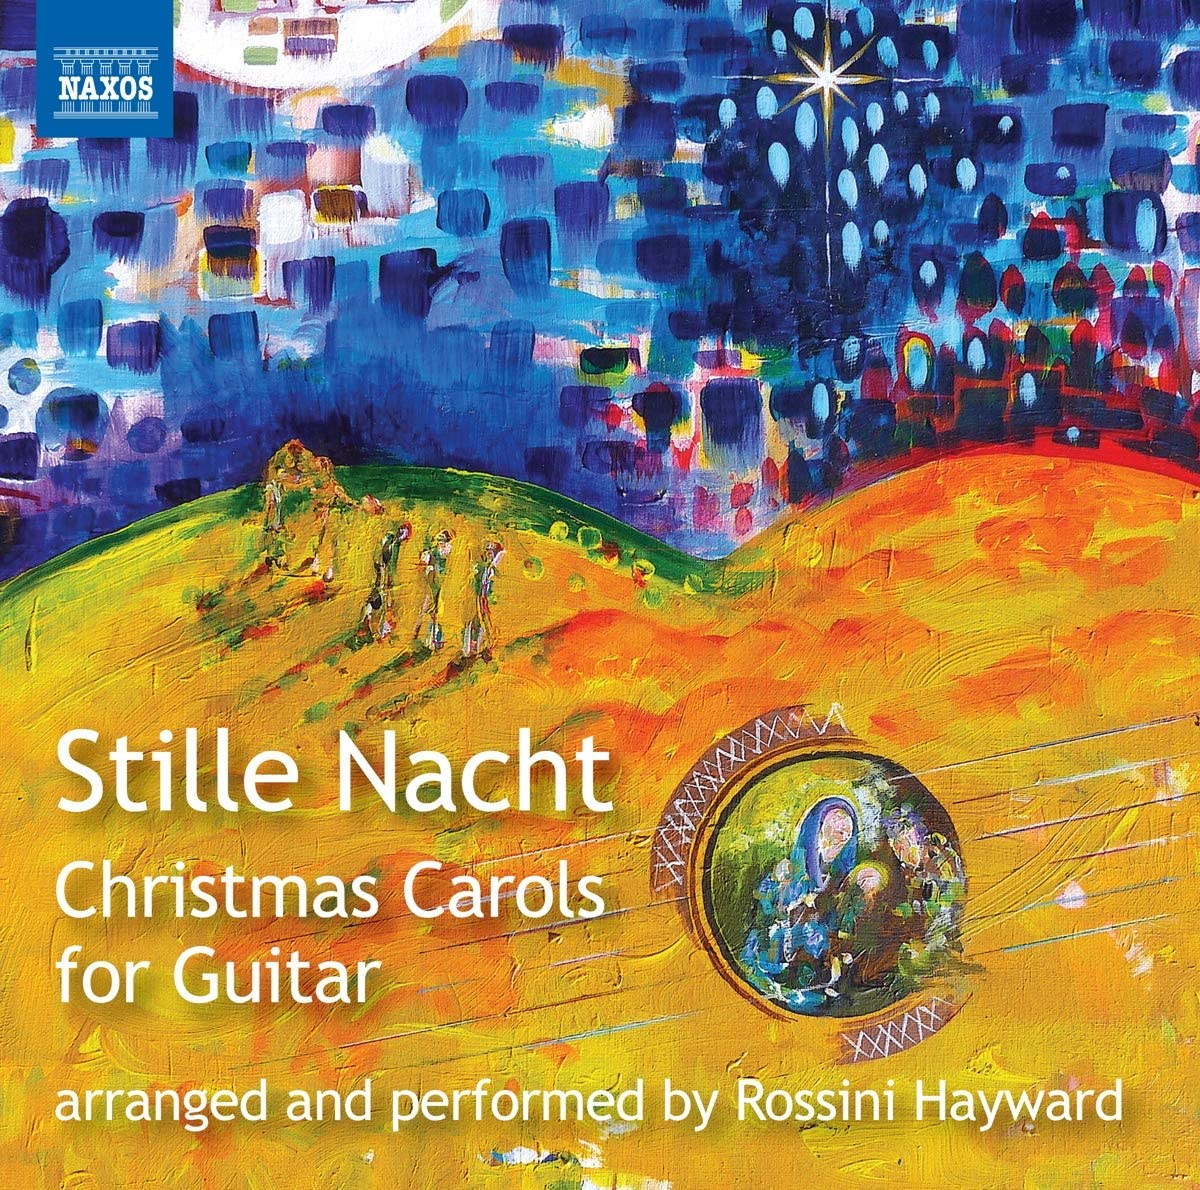 Rossini Hayward Christmas